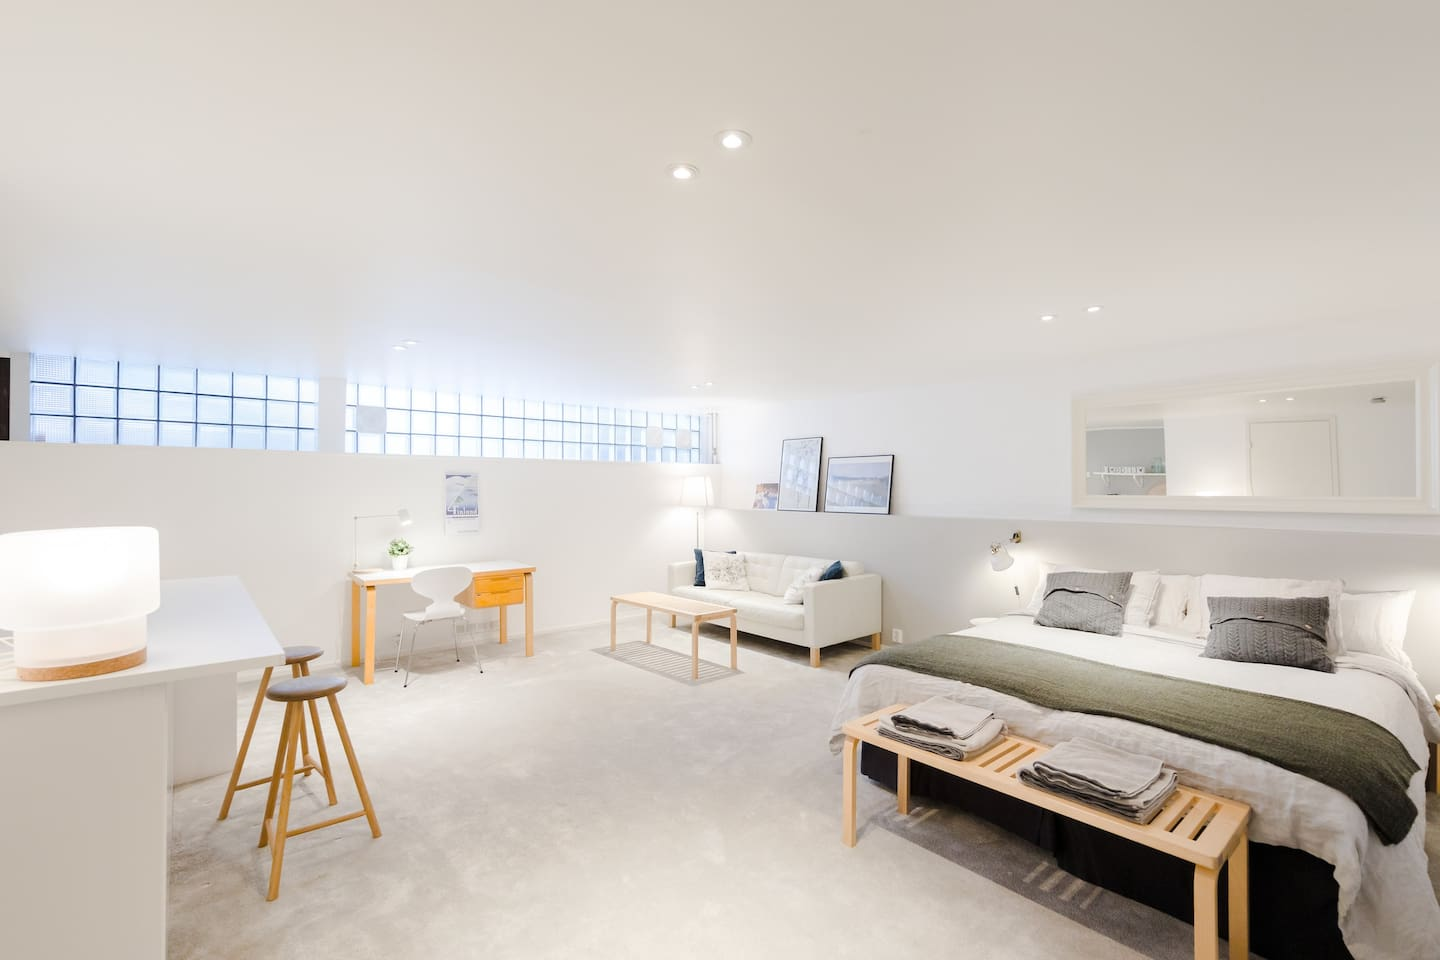 We have renovated our basement guest suite in 2017 to accomodate airbnb guests. Free wifi is included